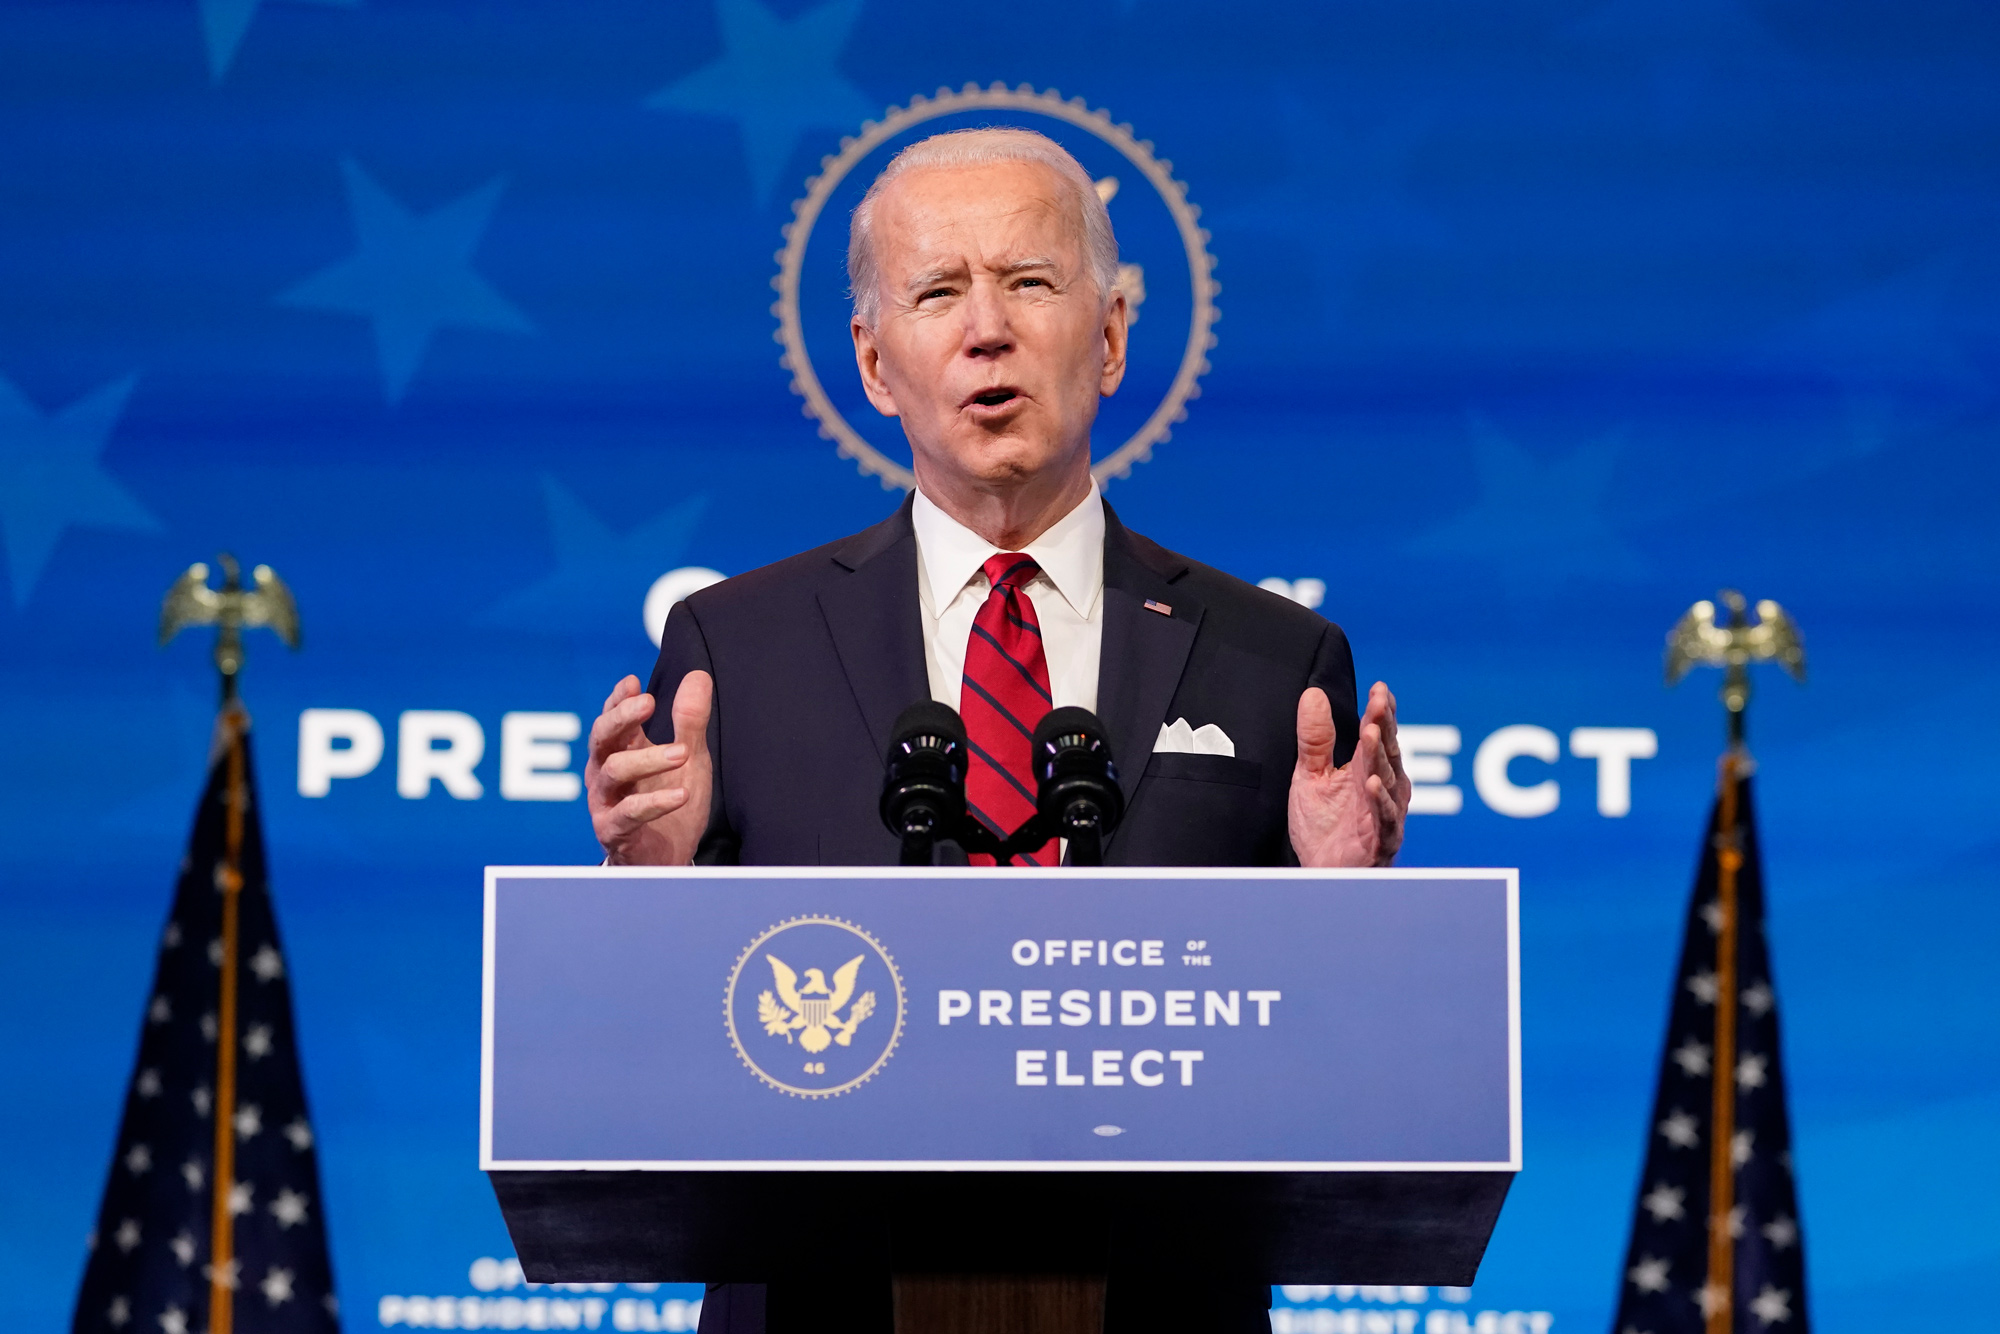 President-elect Joe Biden speaks during an event at The Queen theater on January 15 in Wilmington, Delaware.